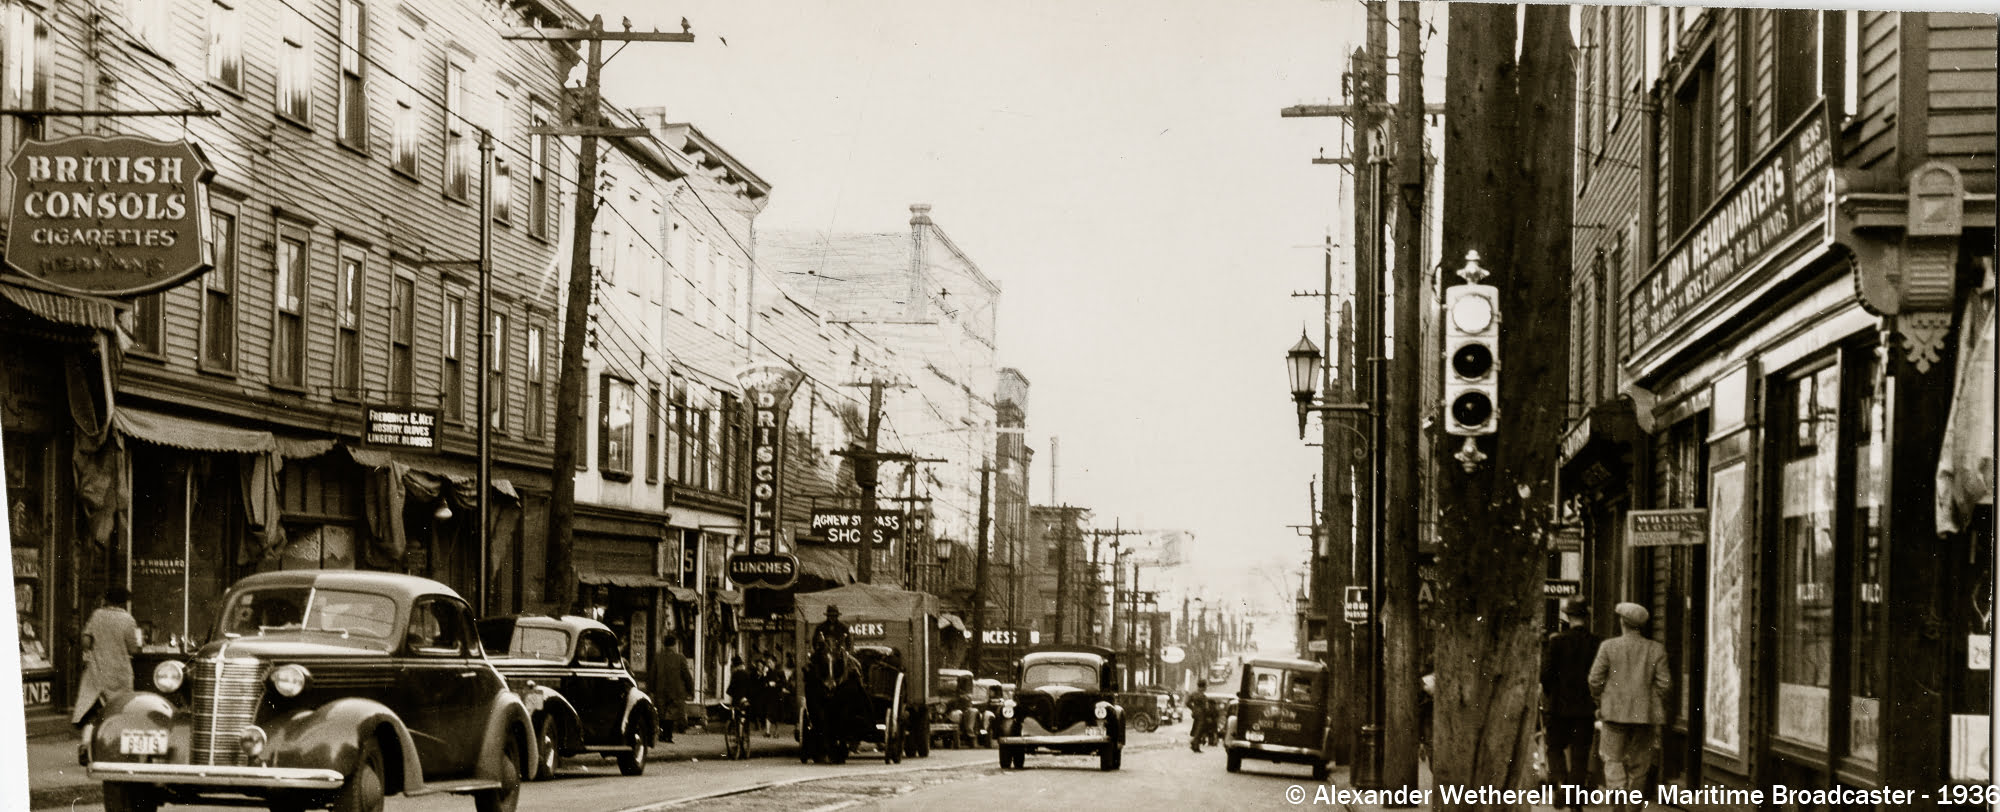 Union St looking east from Charlotte Street, 1936.